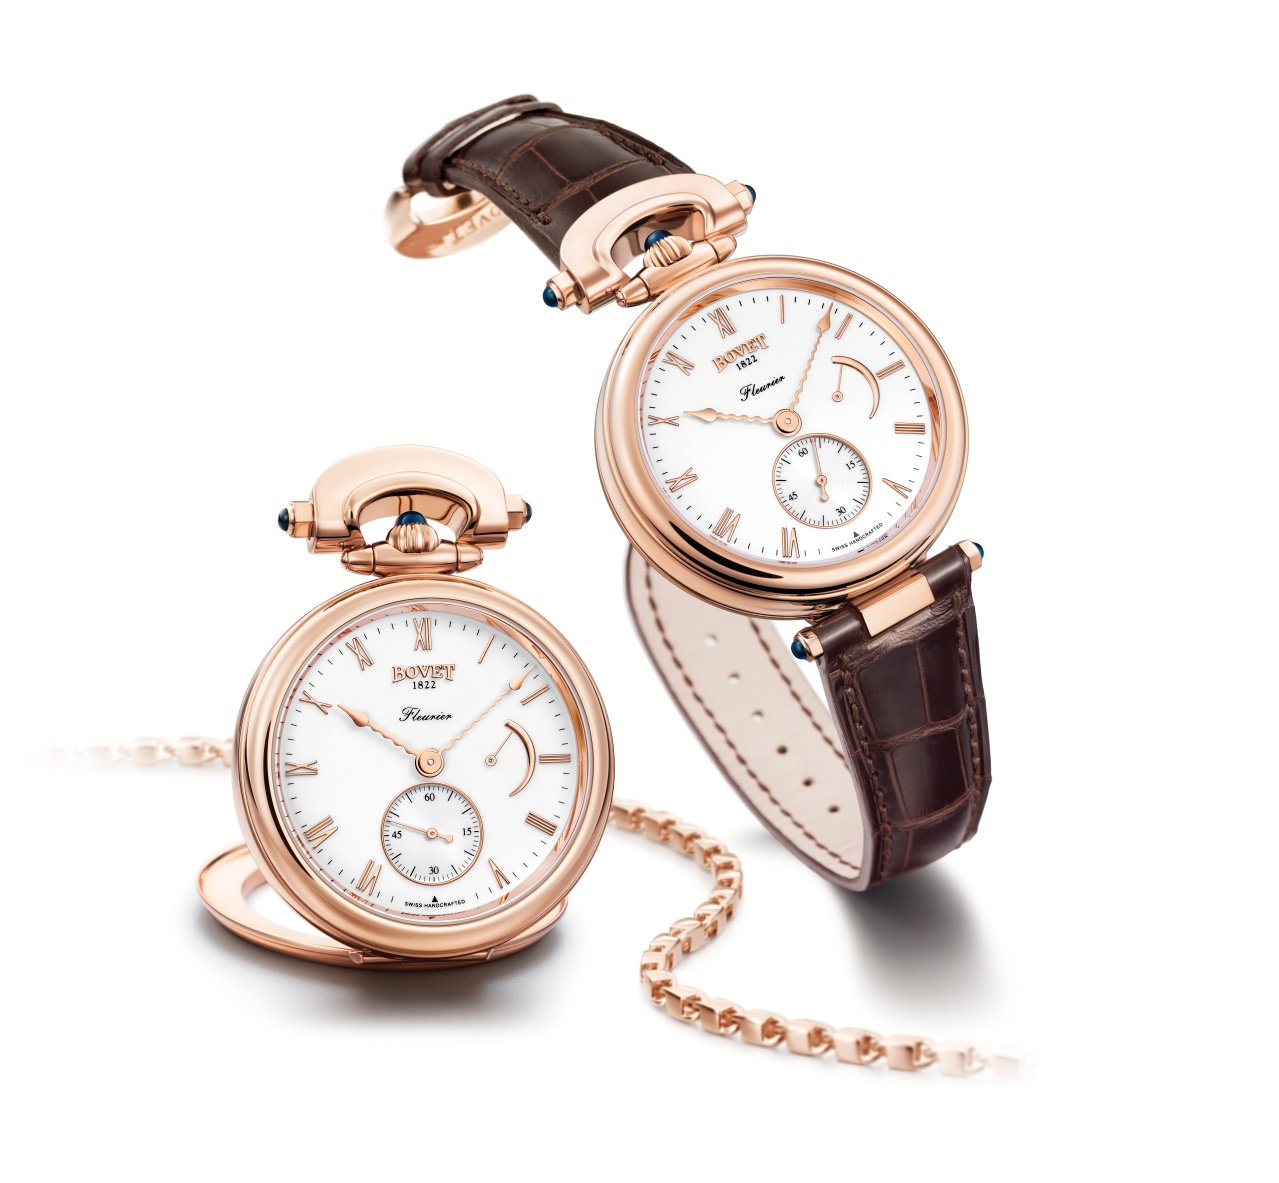 Bovet Watch   Amadeo Fleurier   Ref. Nr. AF43037    Call 312-944-3100  | For Availability